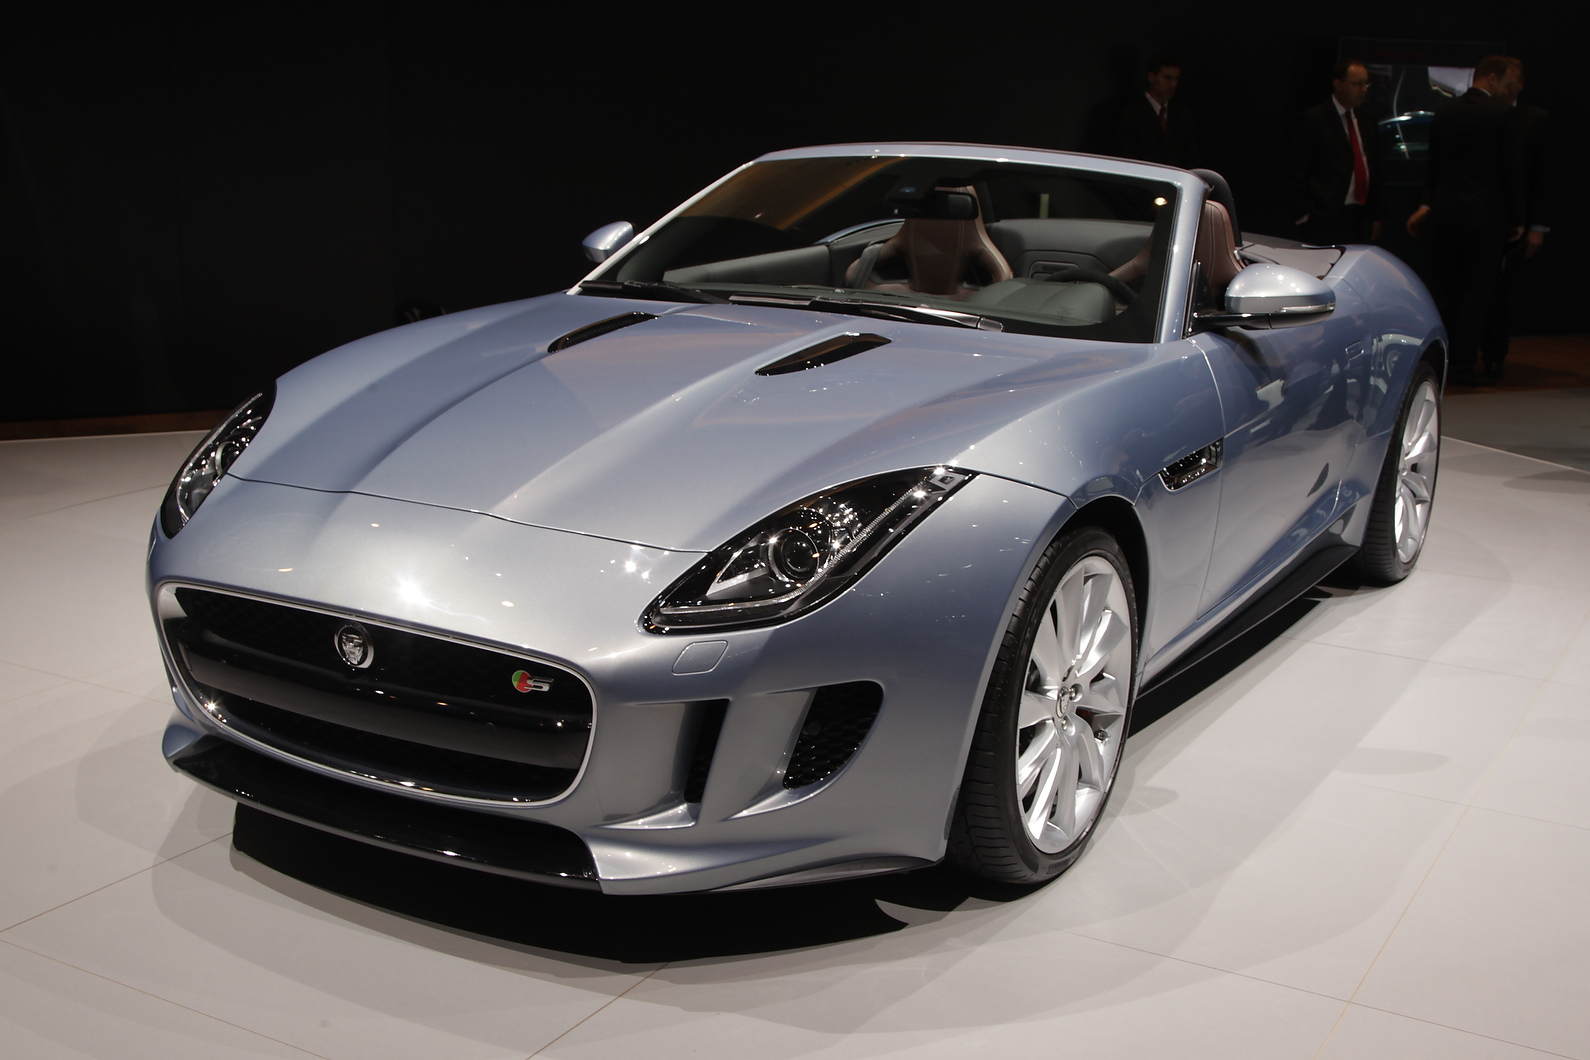 F-type arrives in Jaguar showrooms this year. Internationally, both V6 and V8 petrol engines will be available